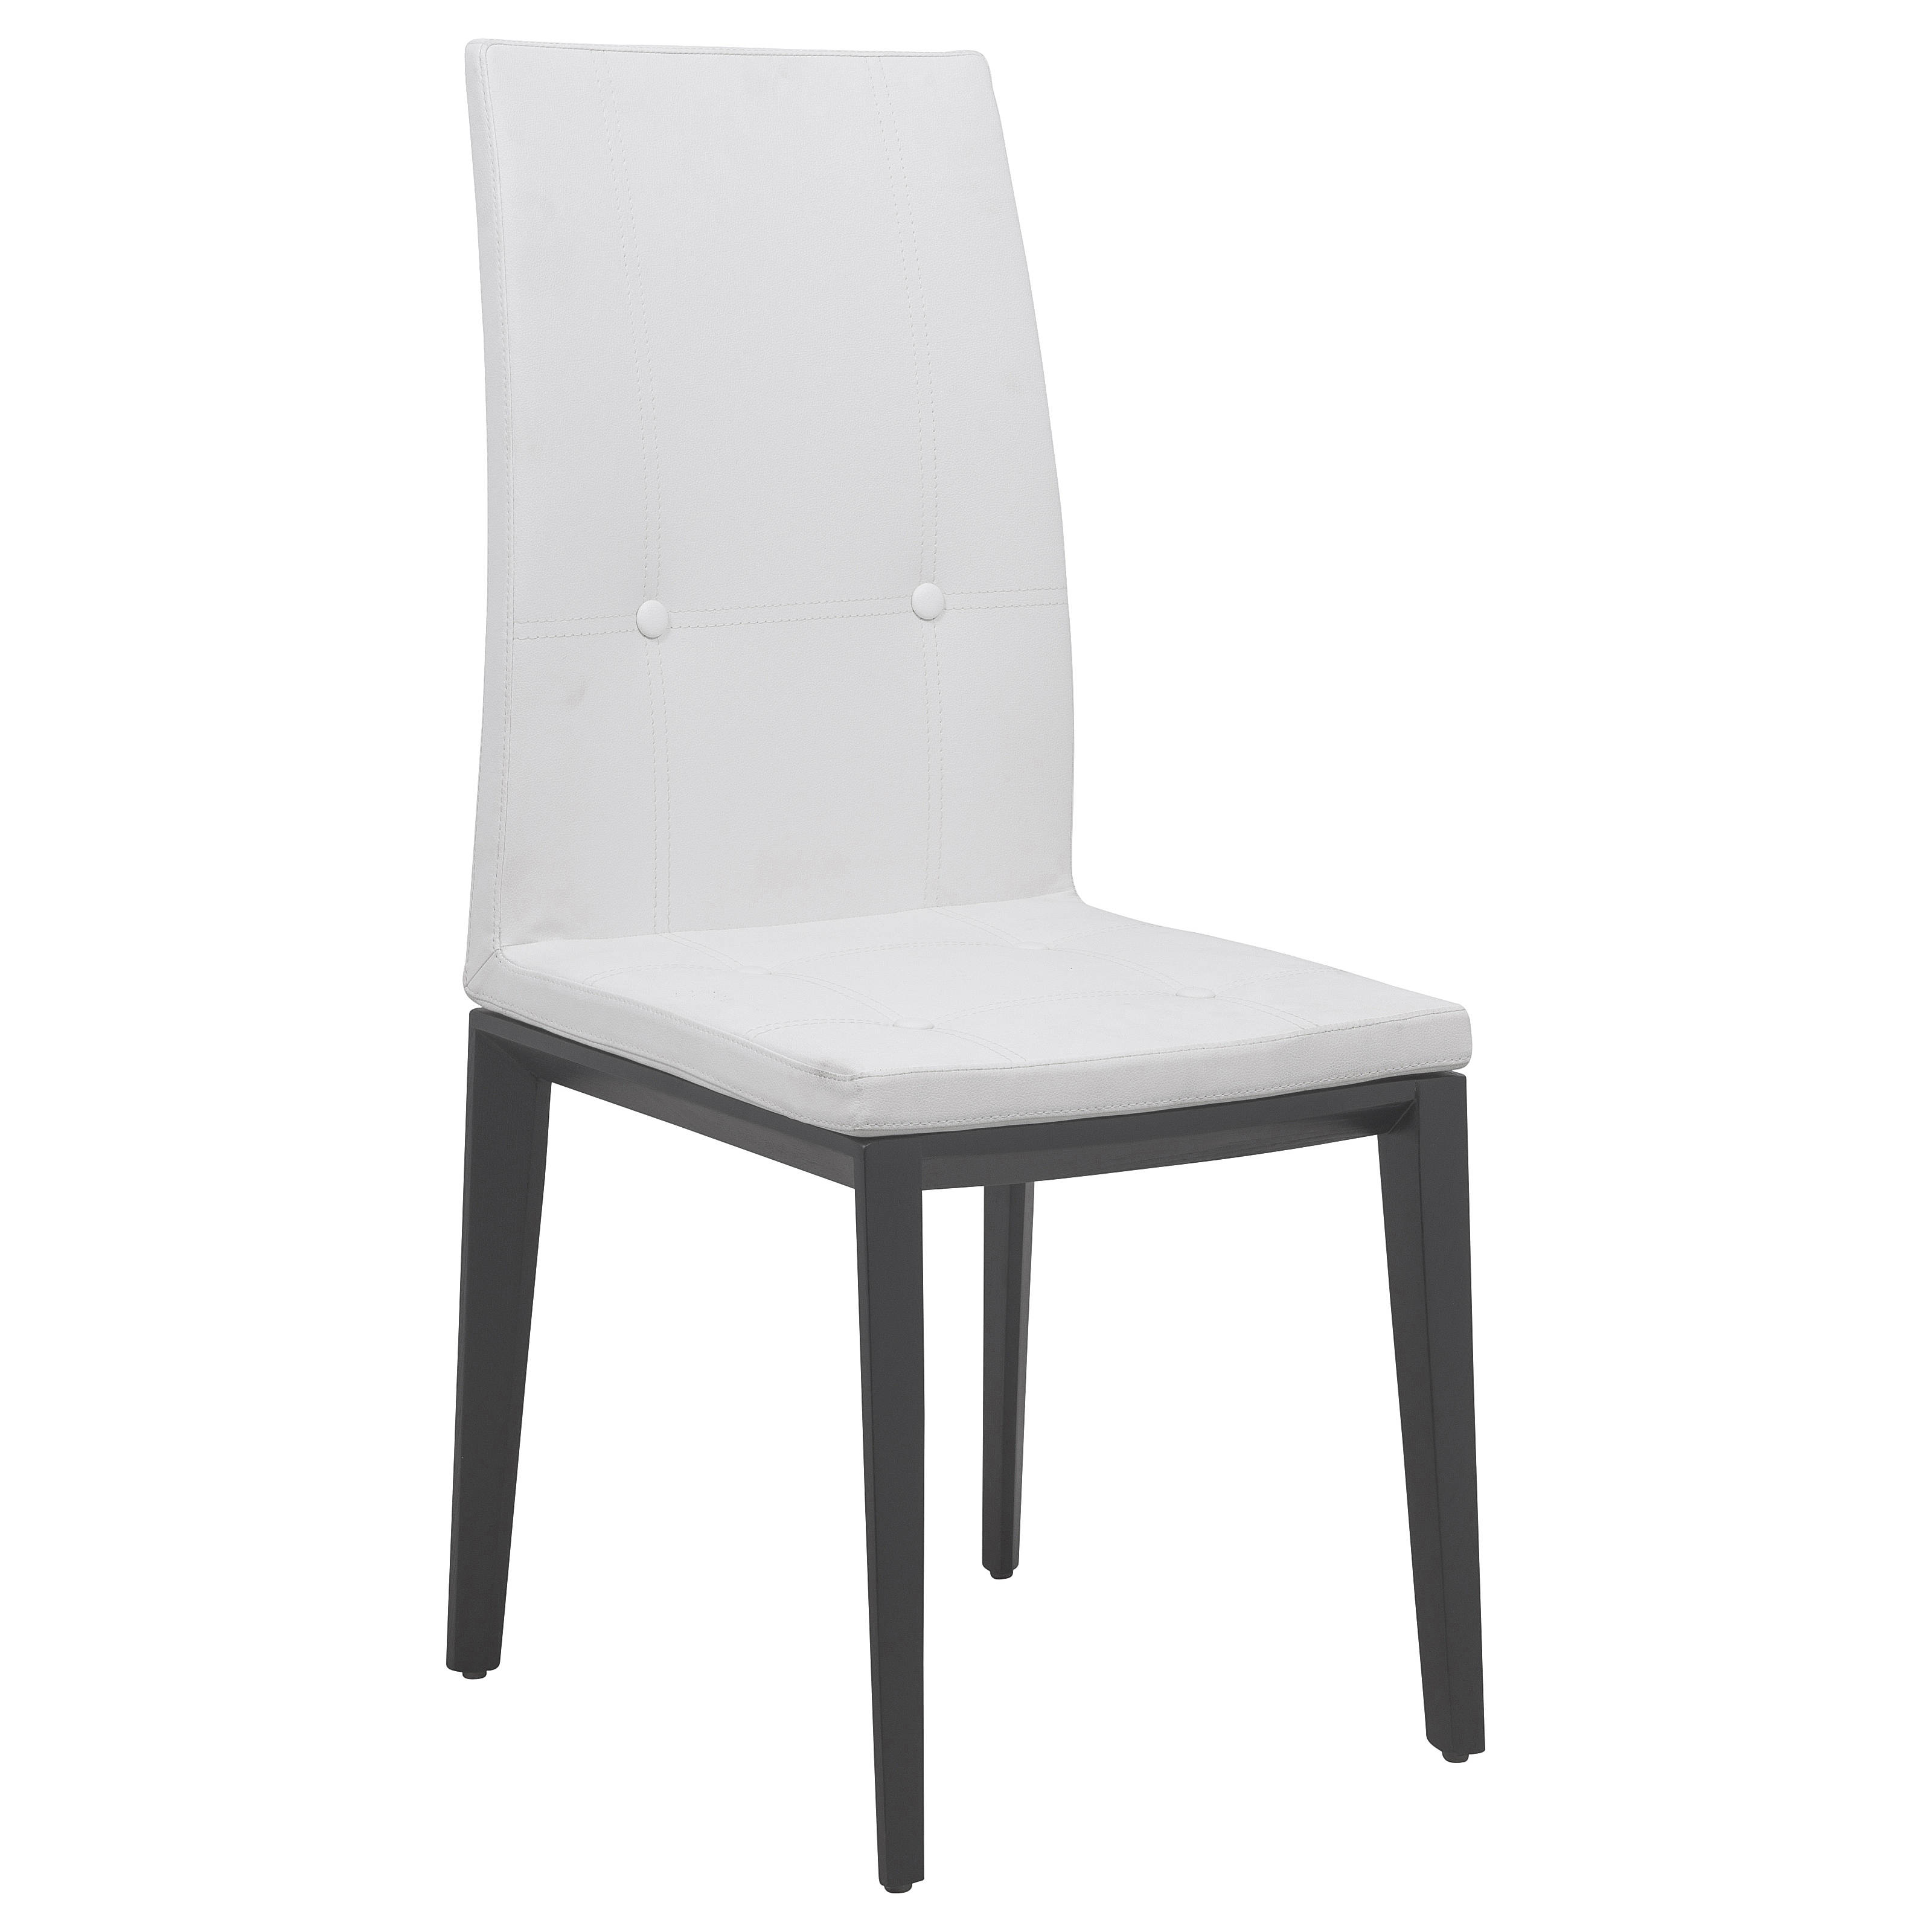 Leisuremod Somers White Faux Leather Dining Chair The Classy Home